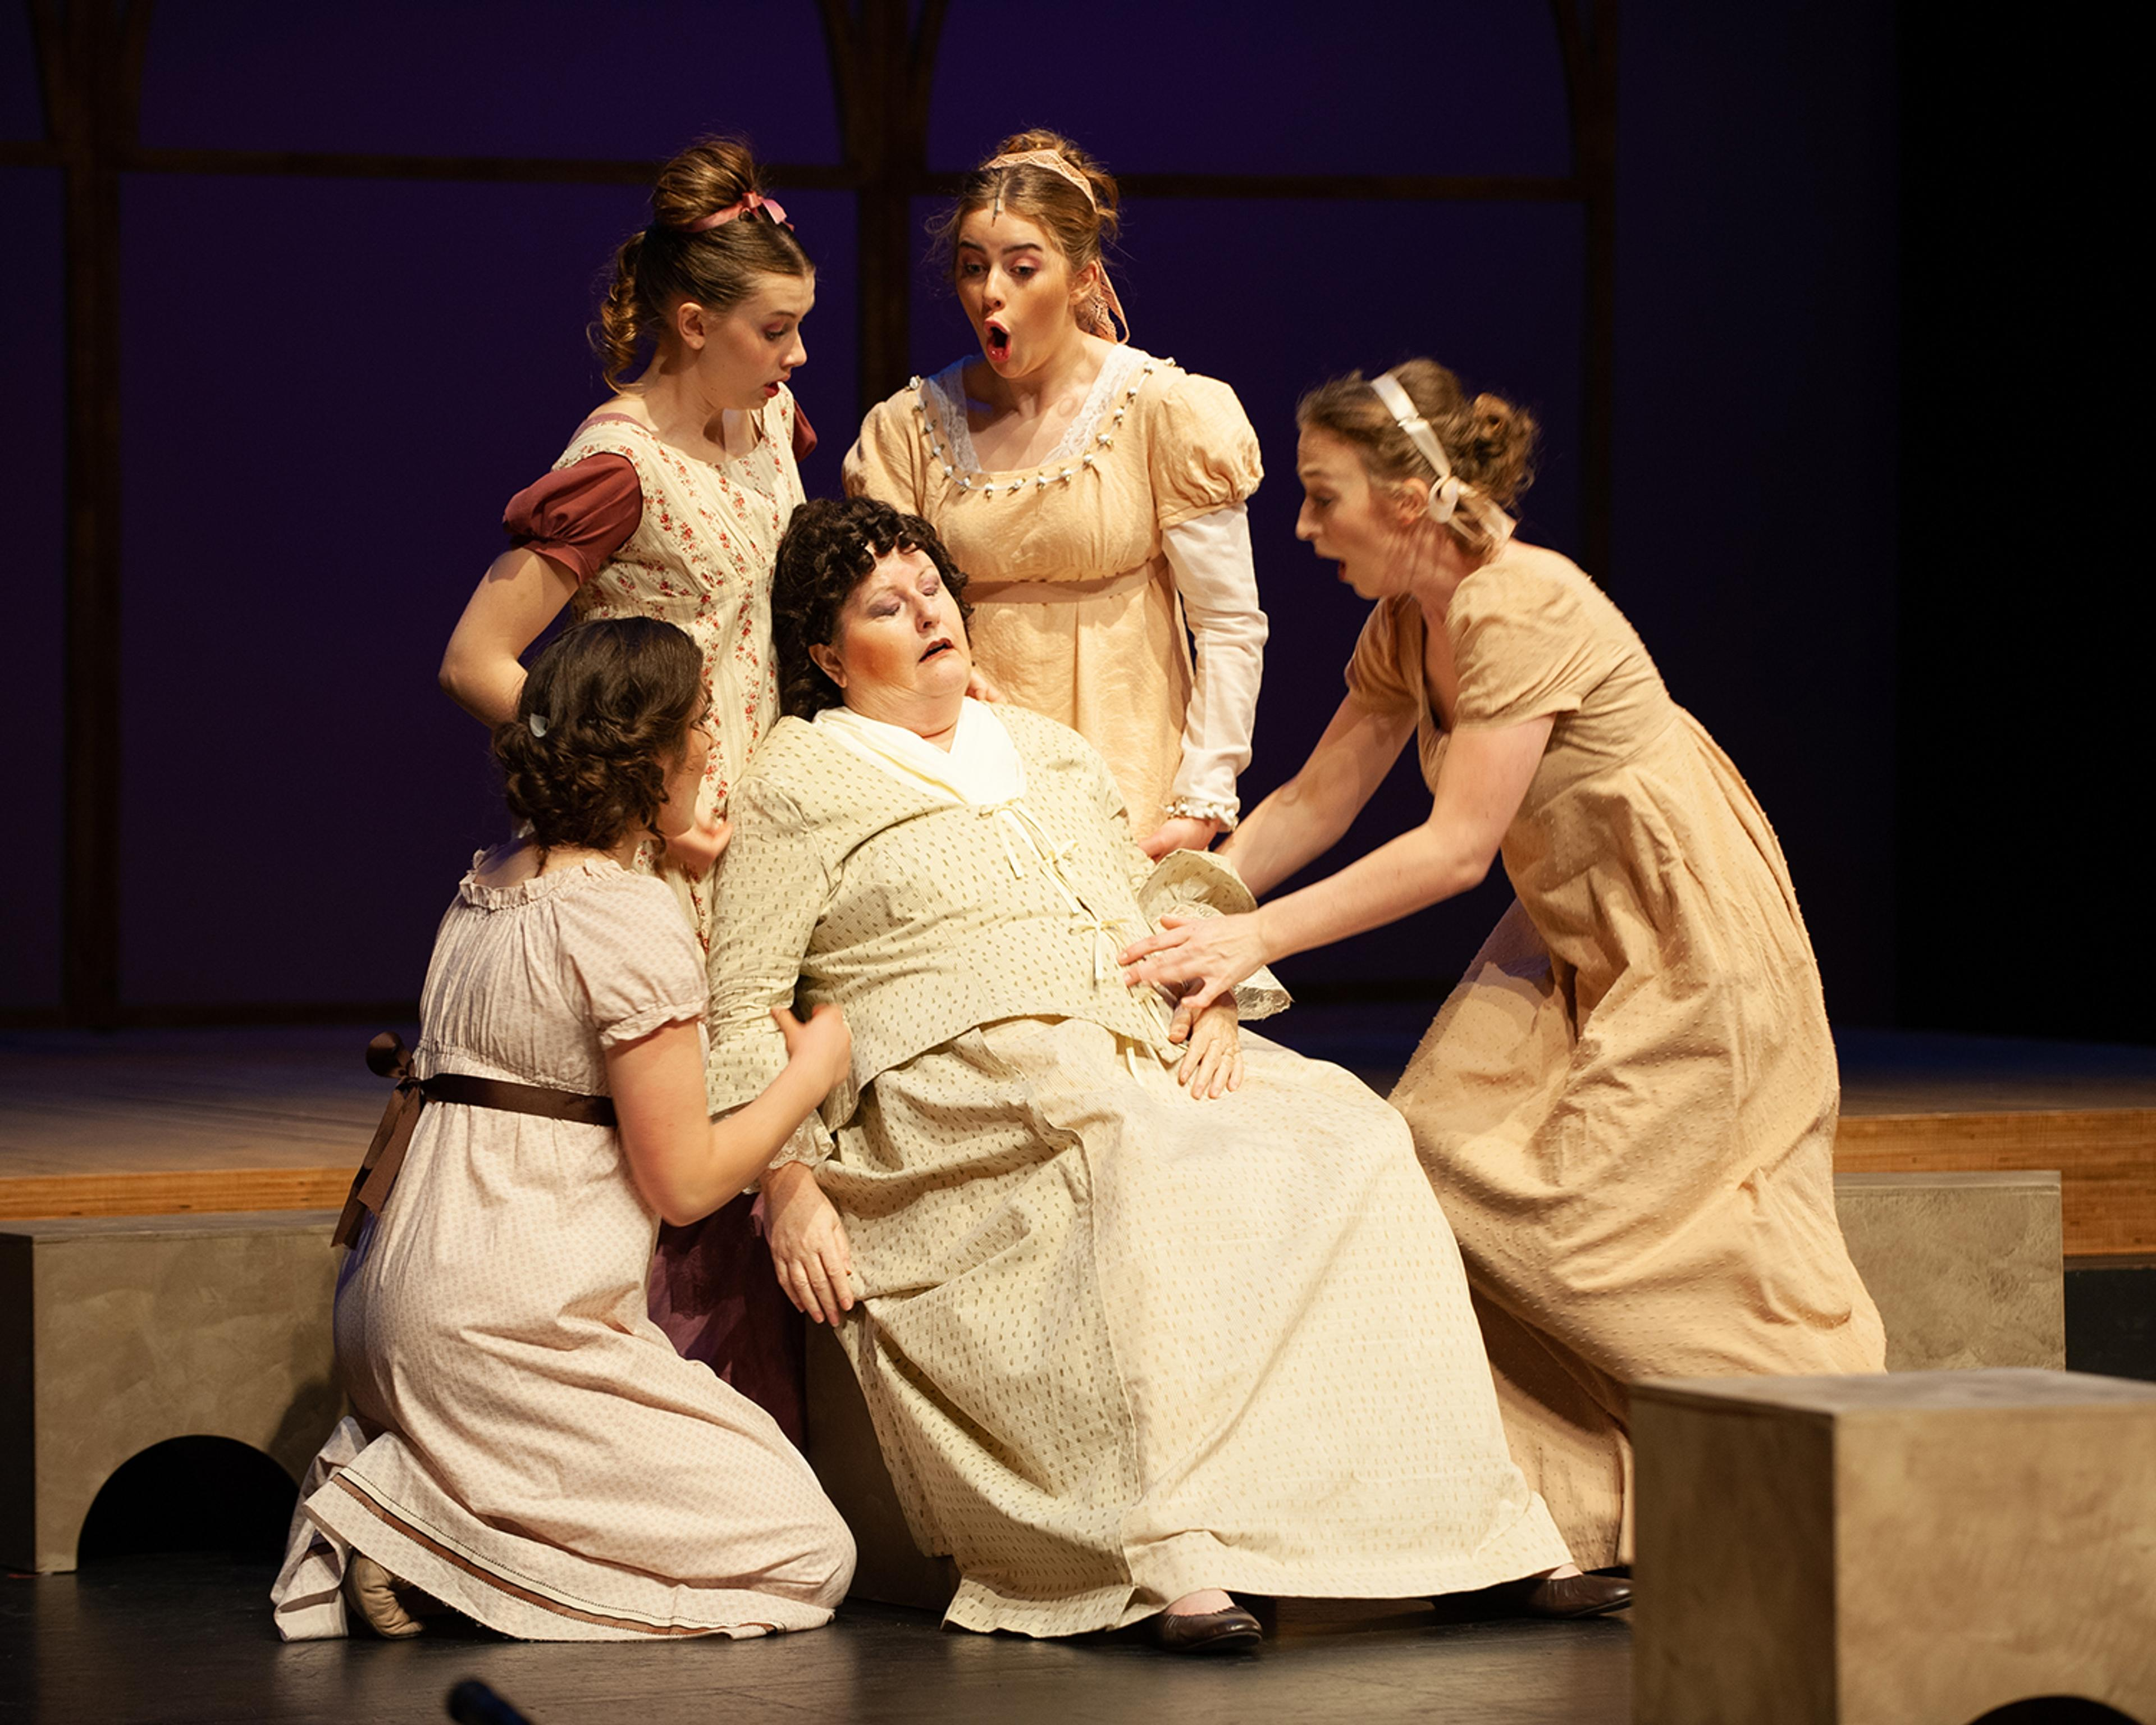 A production photo from Pride and Prejudice with Mrs. Bennet fainting into a chair. Her daughters, who are gathered around her, look shocked.